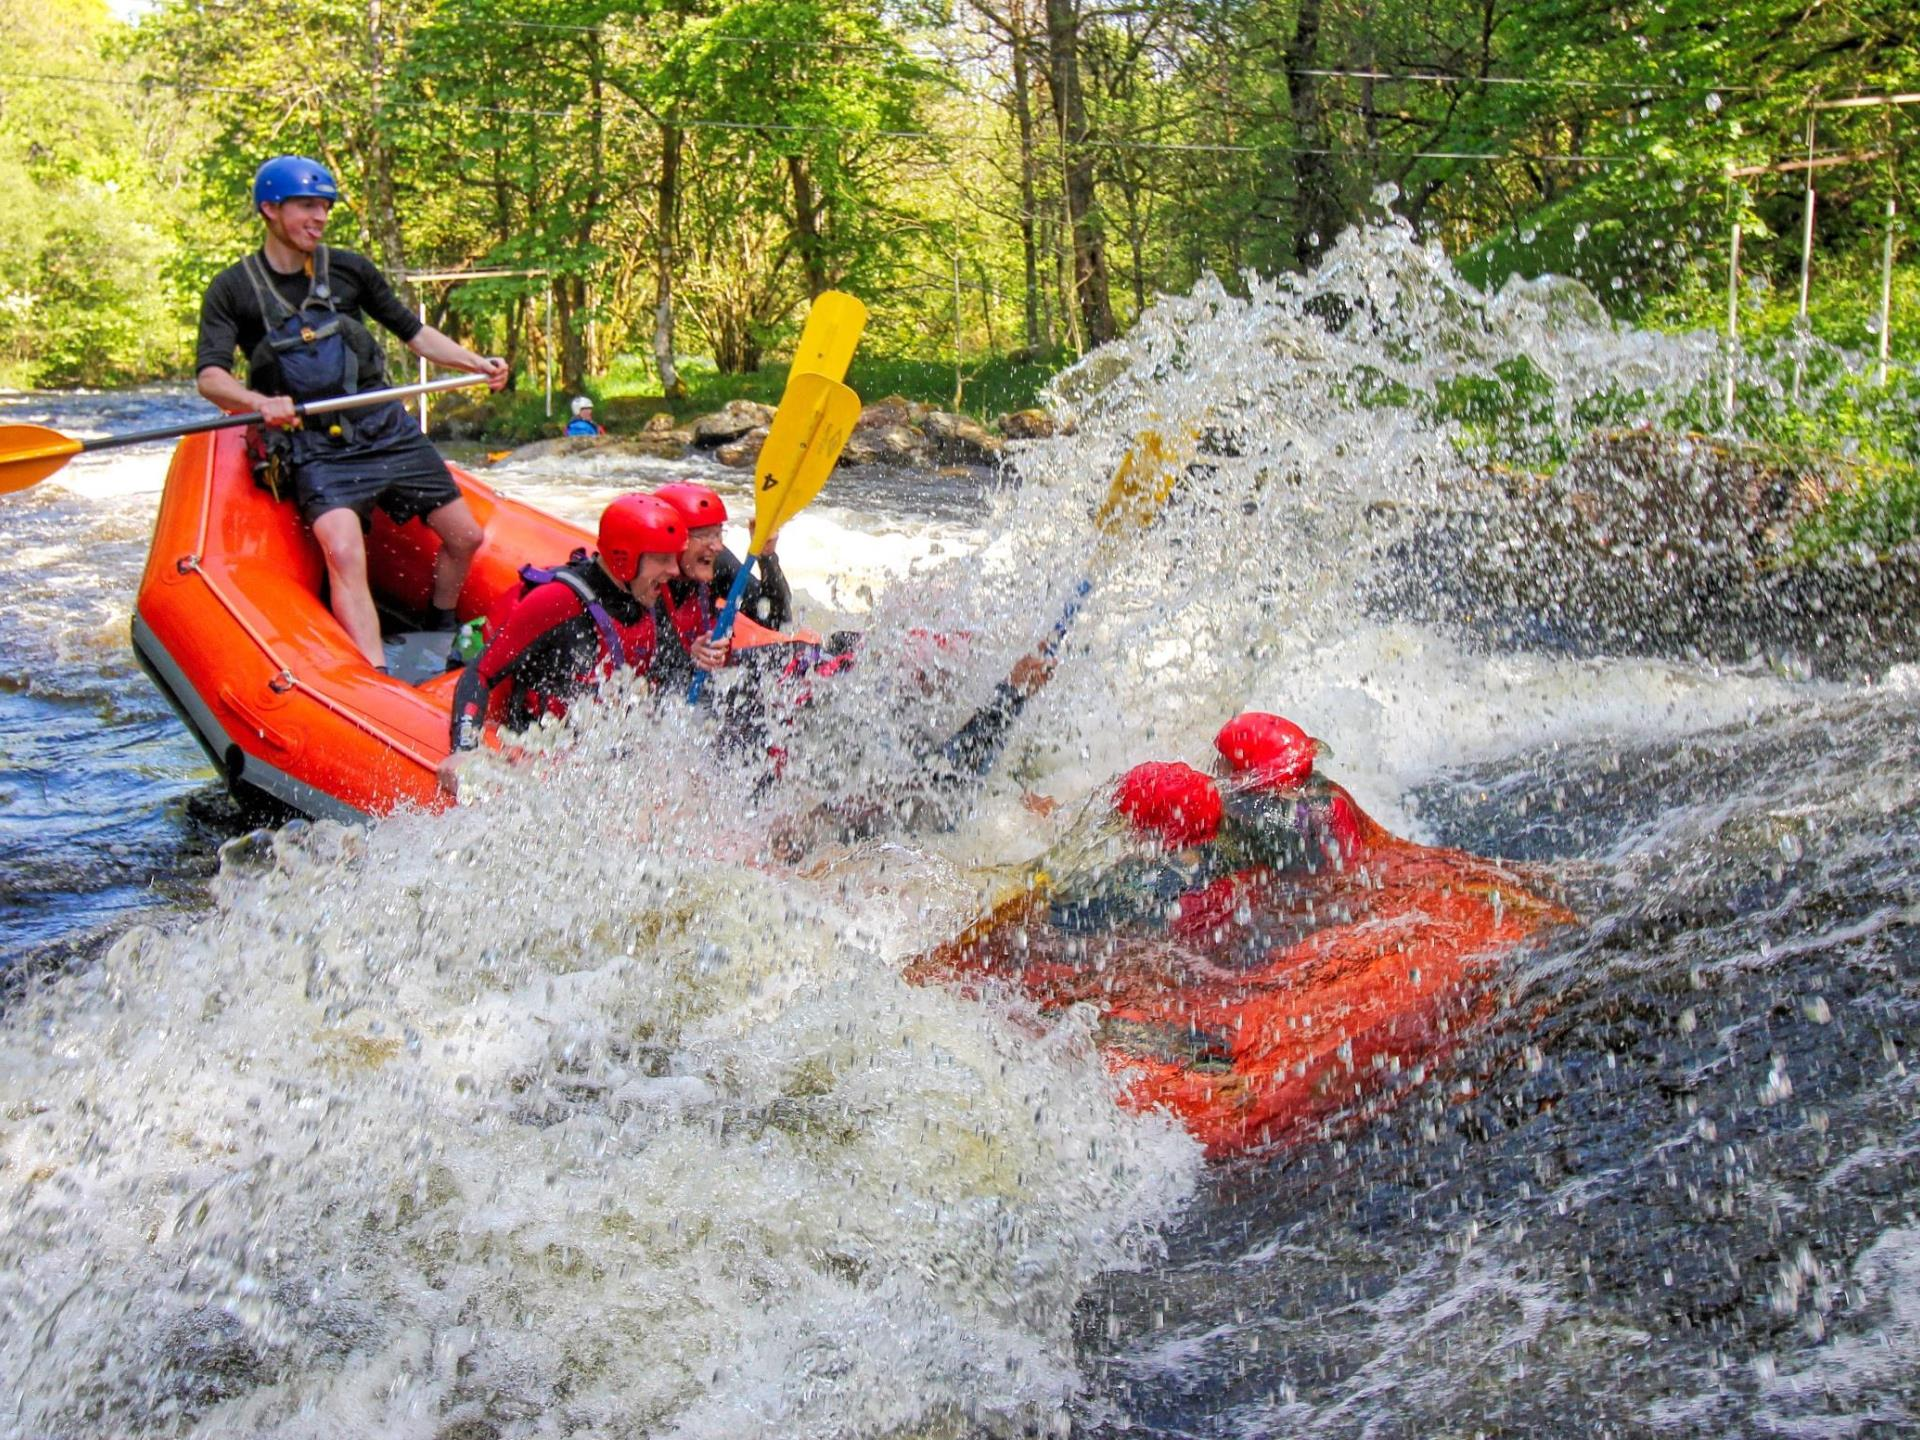 Rafting Full Session on the River Tryweryn